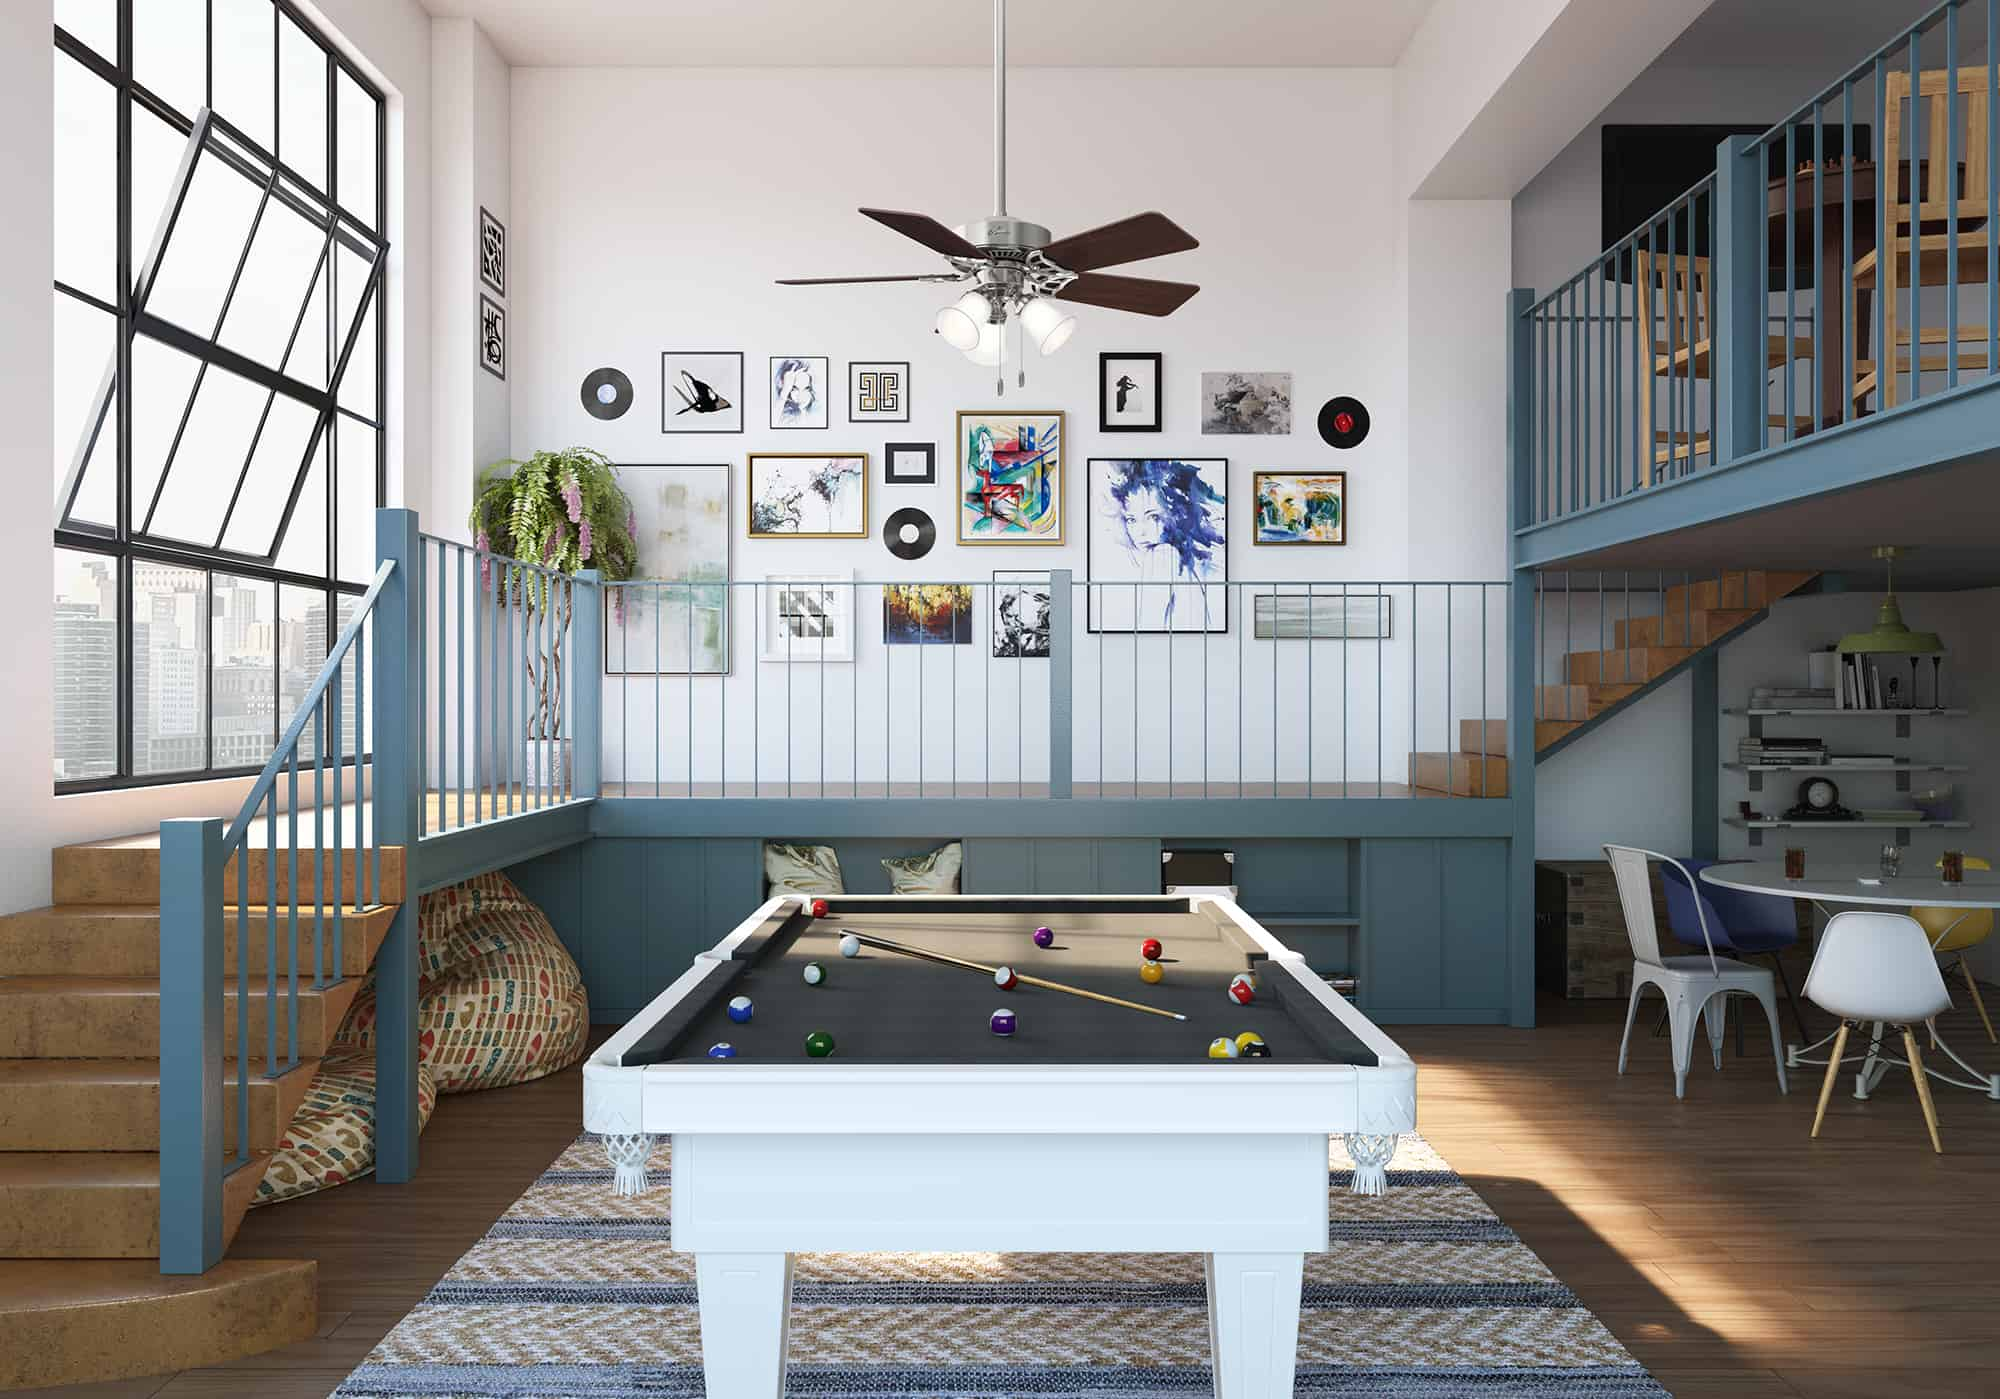 Best Pool Table Lights with Ceiling Fan